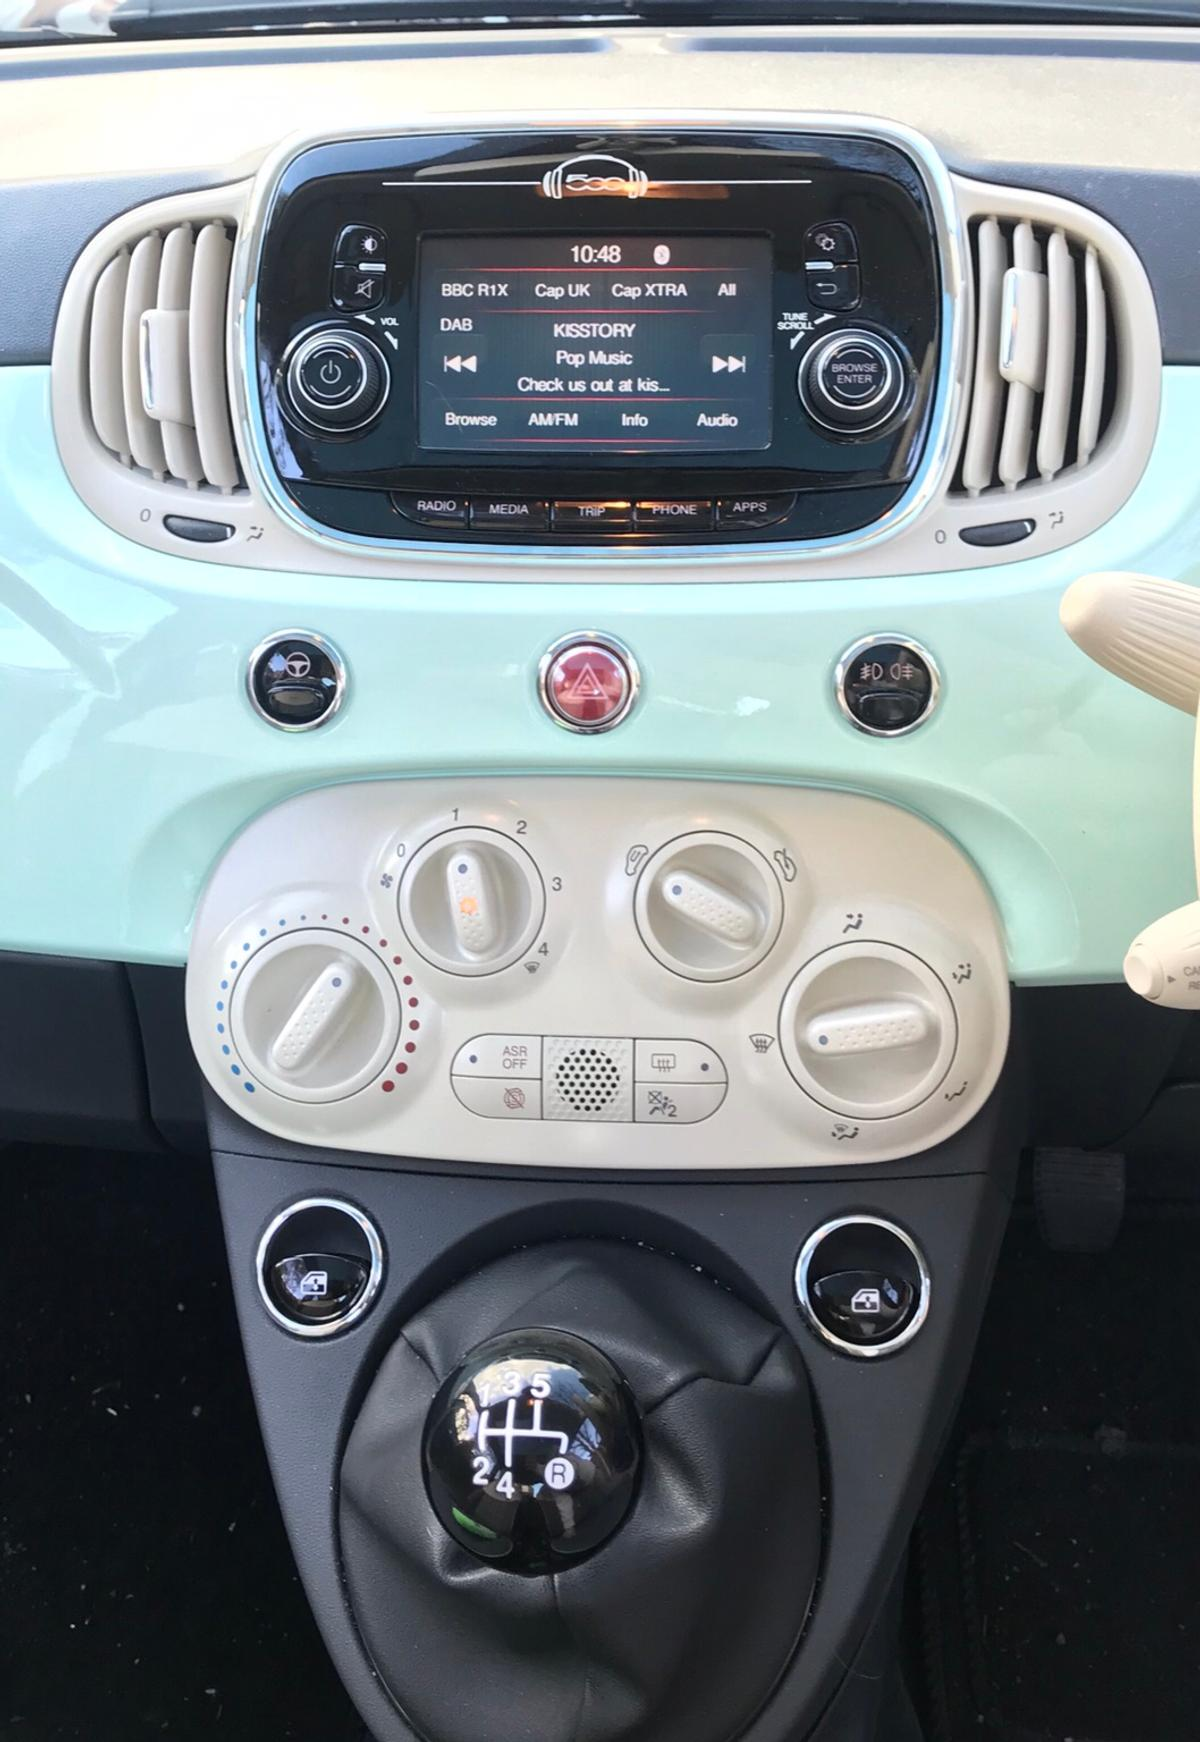 Fiat 500 Lounge In Mint In Bh8 Bournemouth For 8 995 00 For Sale Shpock